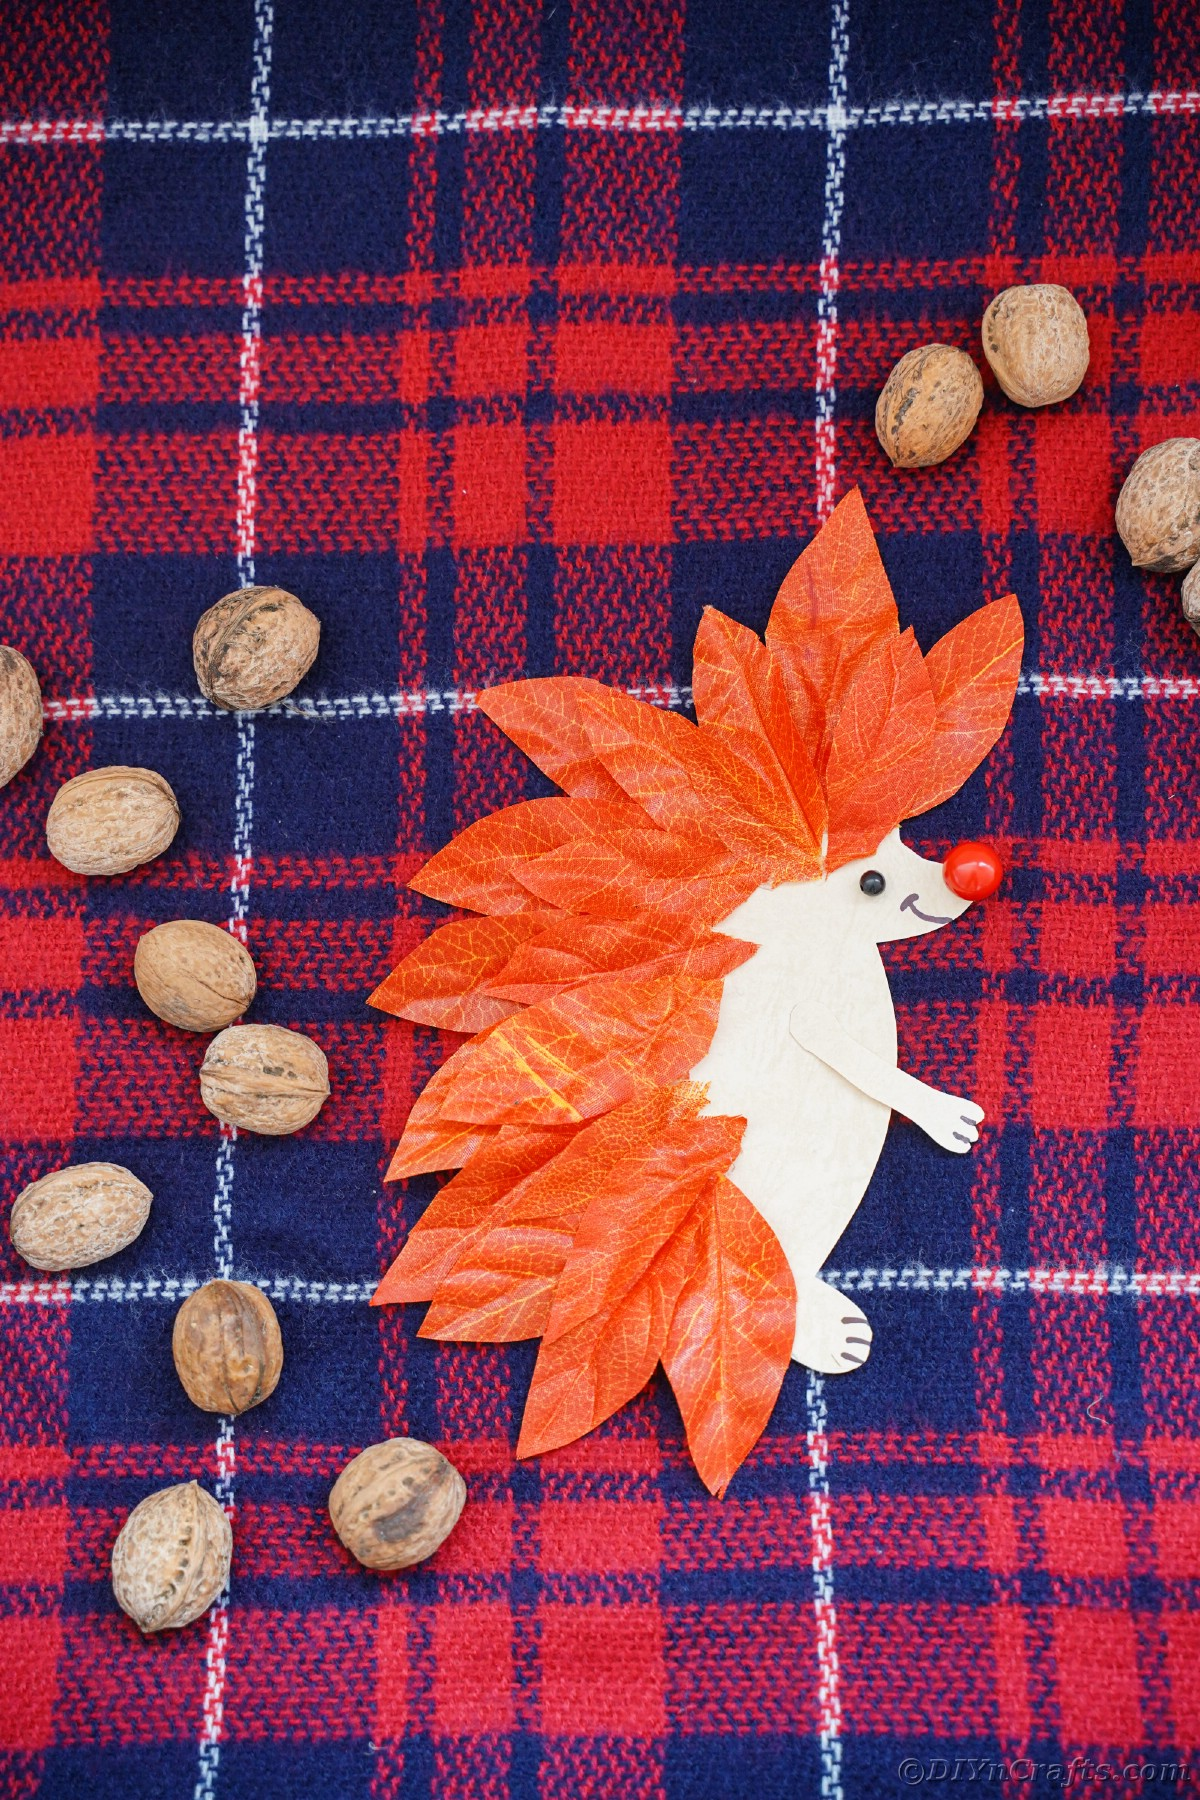 Red and blue plaid fabric under paper hedgehog